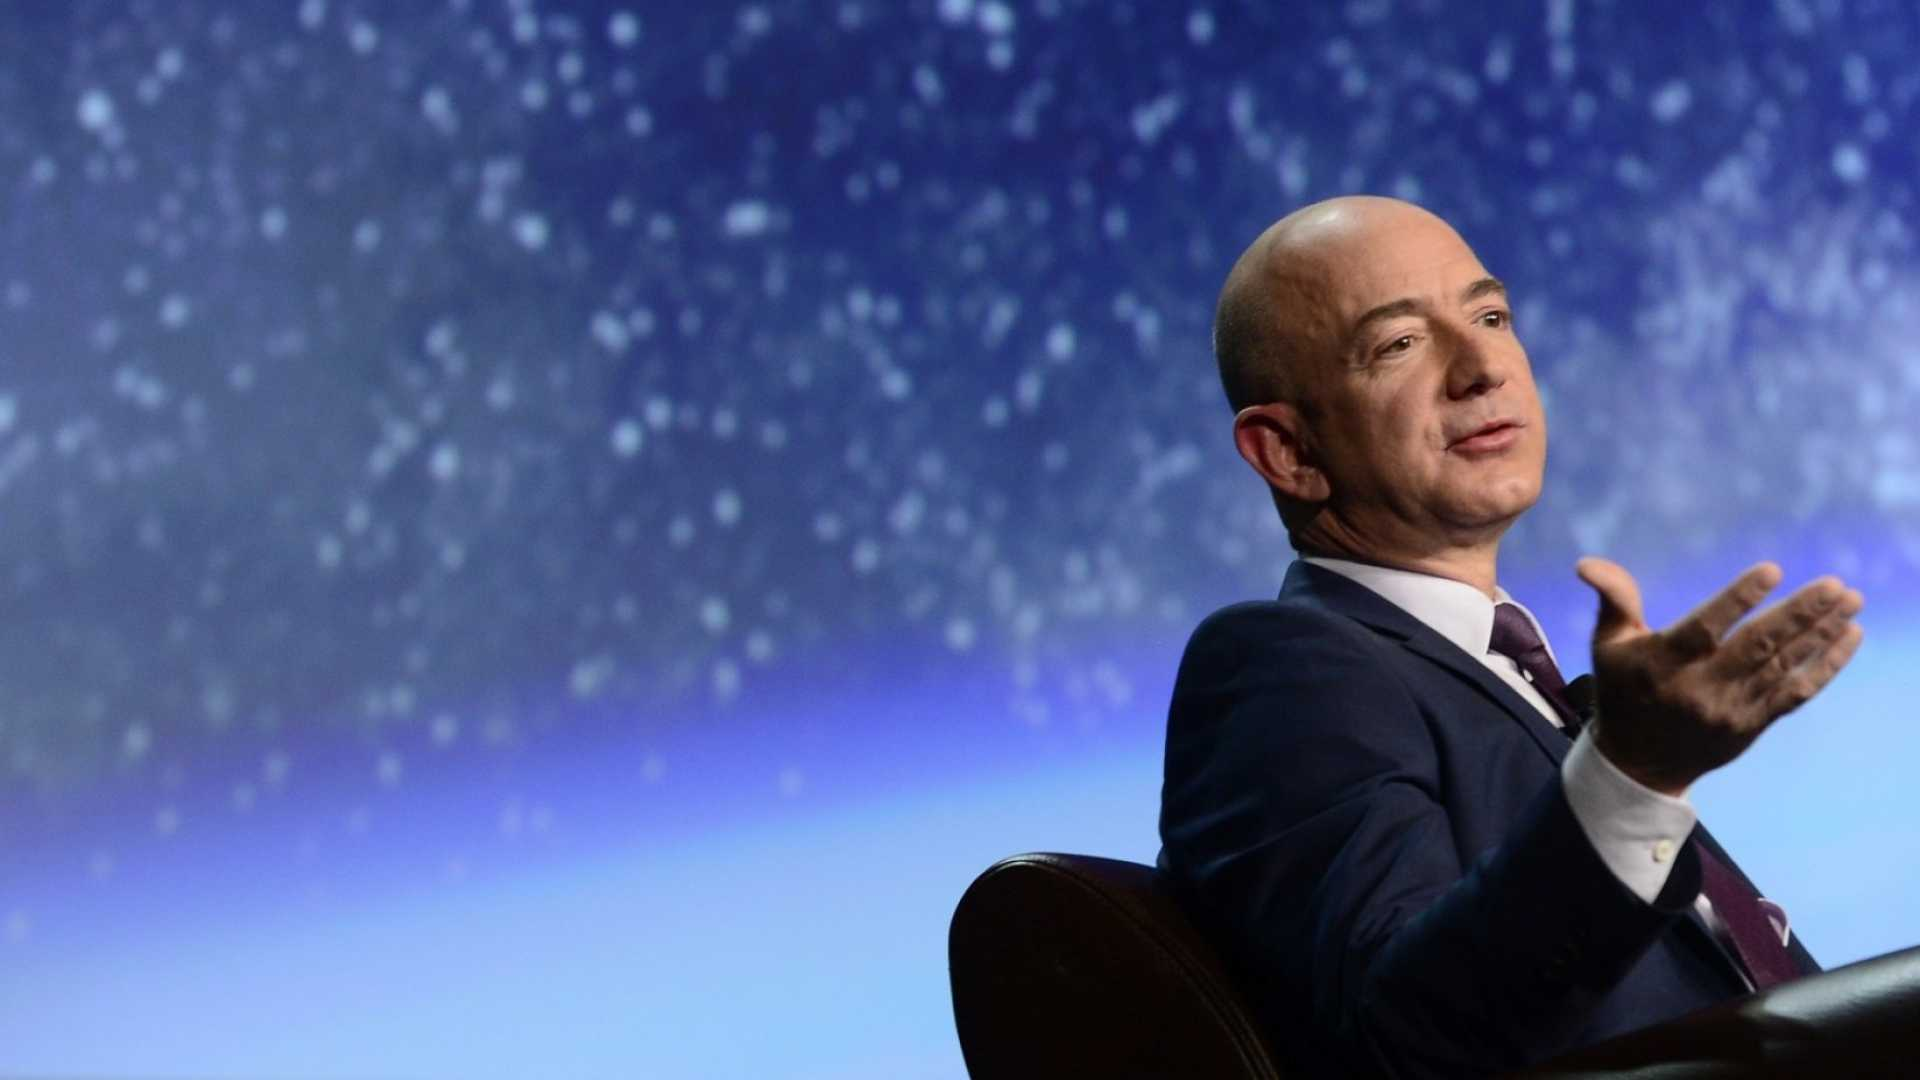 Jeff Bezos Posted His First Amazon Job Ad 25 Years Ago. 1 Telling Sentence Within Foreshadowed the Future